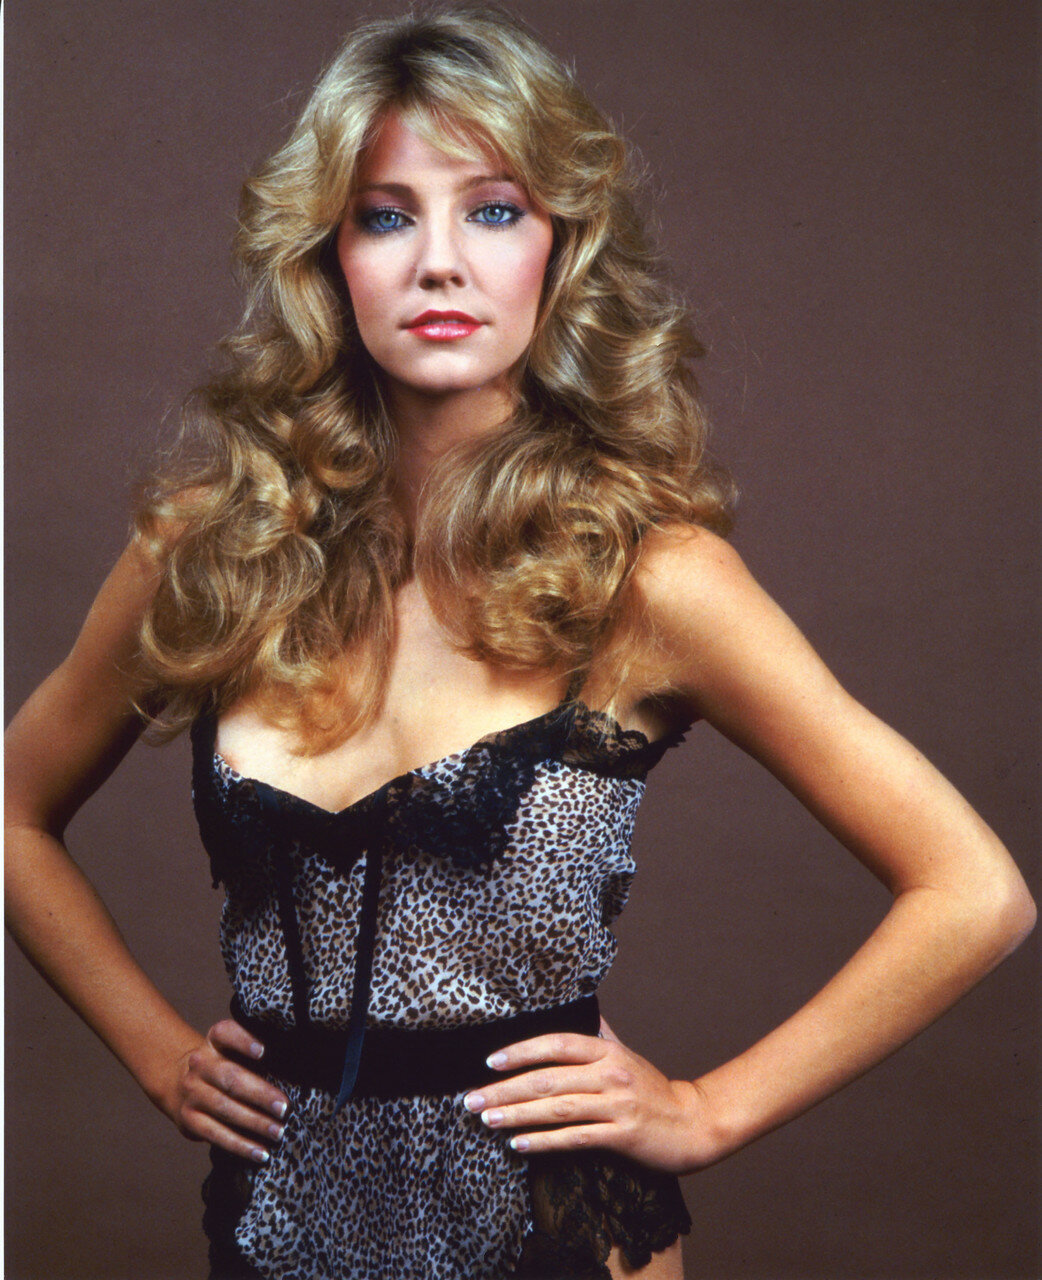 The special edition: Heather Locklear: humus